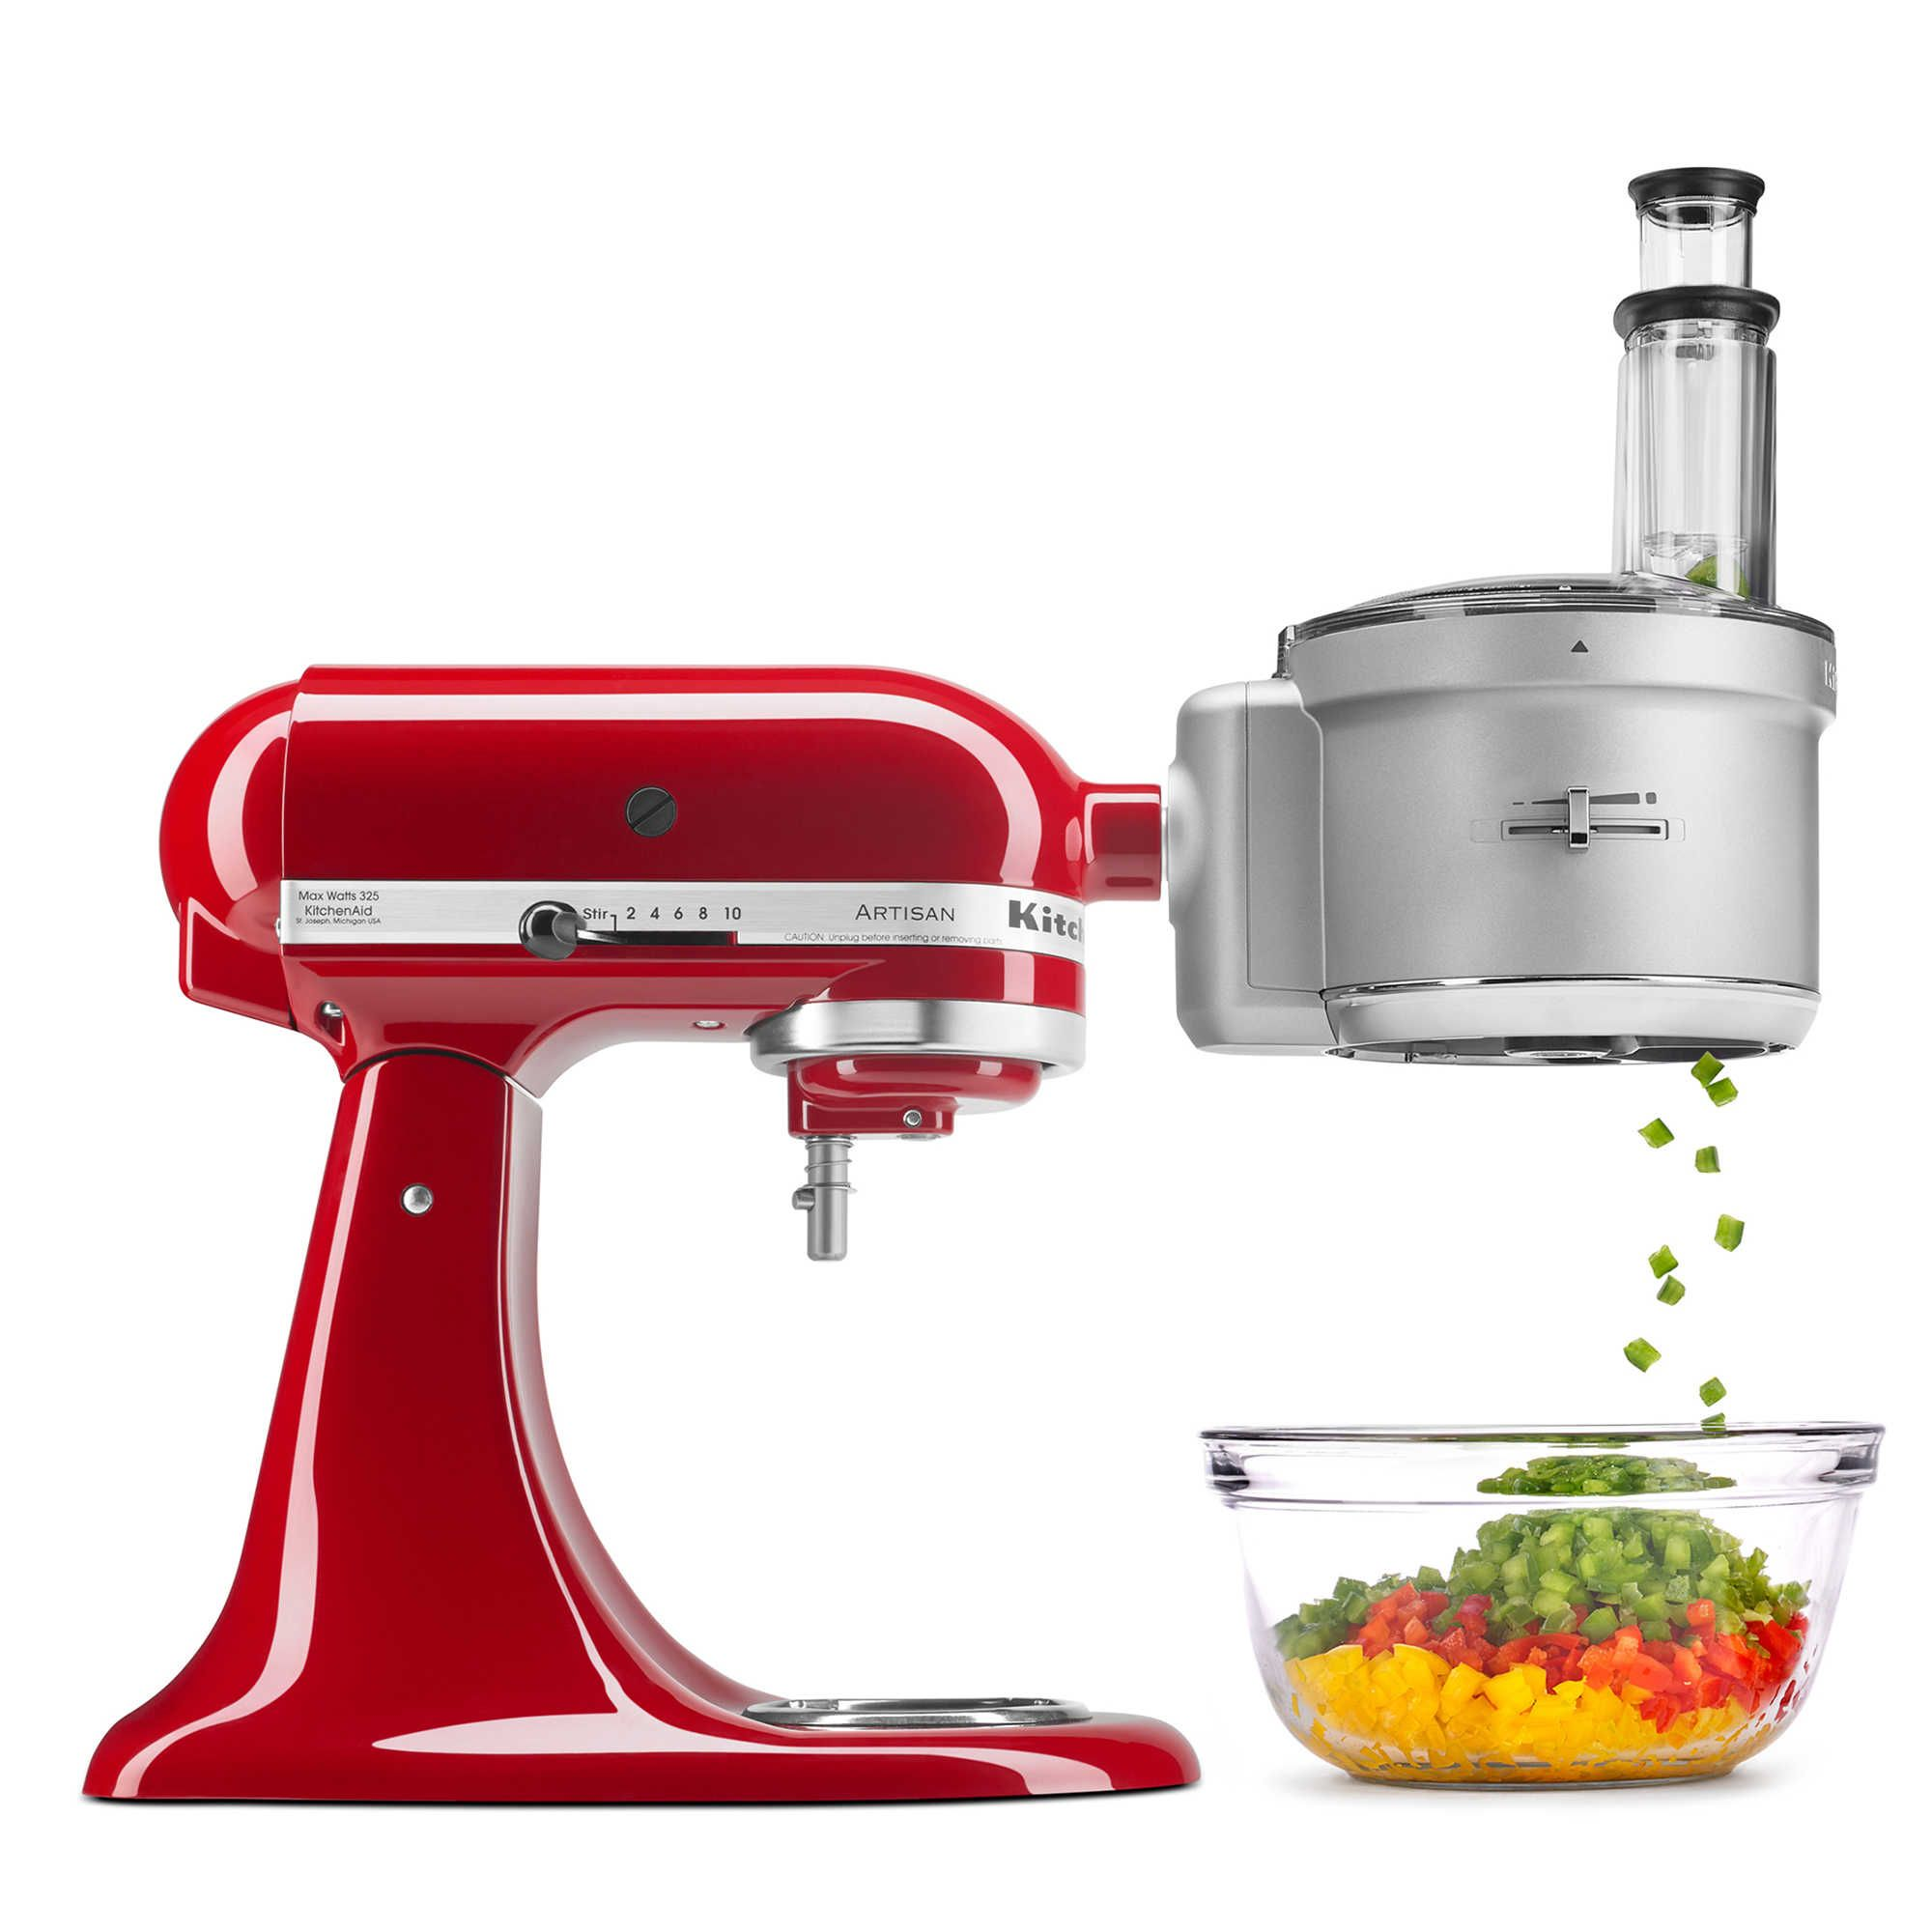 Kitchenaid Stand Mixer Accessory Set kitchenaid® food processor with commercial style dicing kit stand